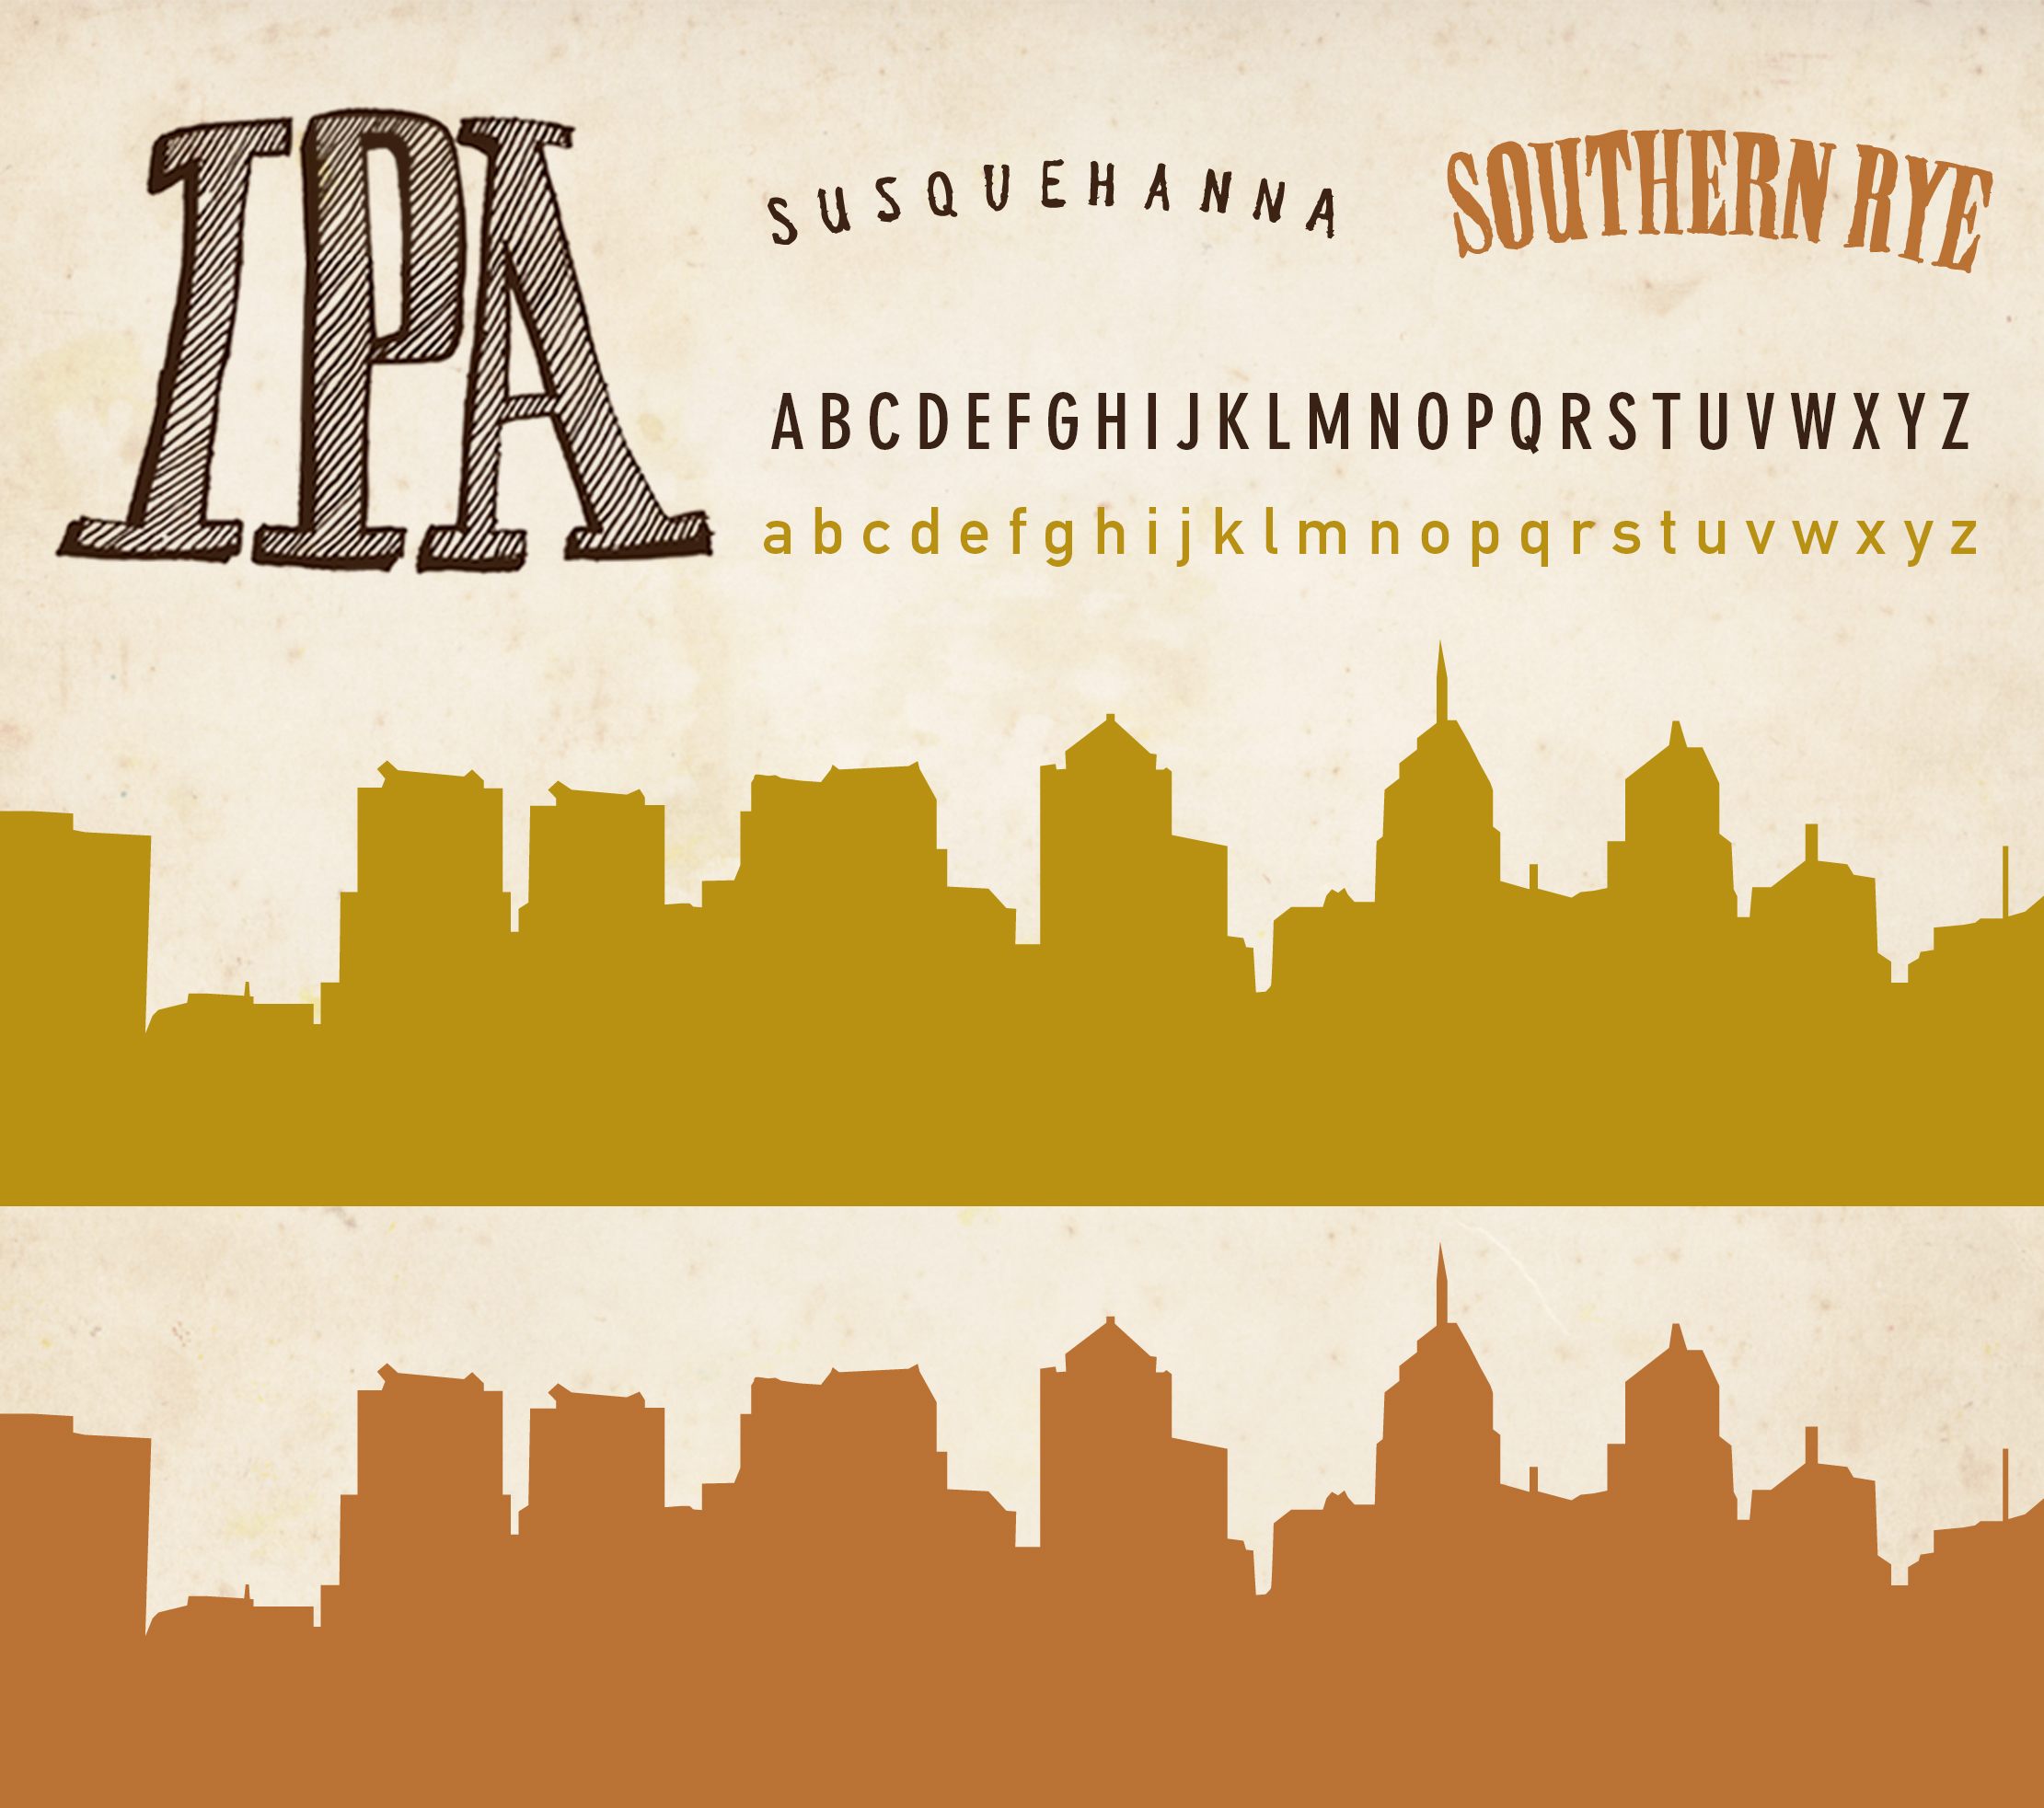 Susquehanna Brewing Co Southern Rye IPA Branding by Just Make Things